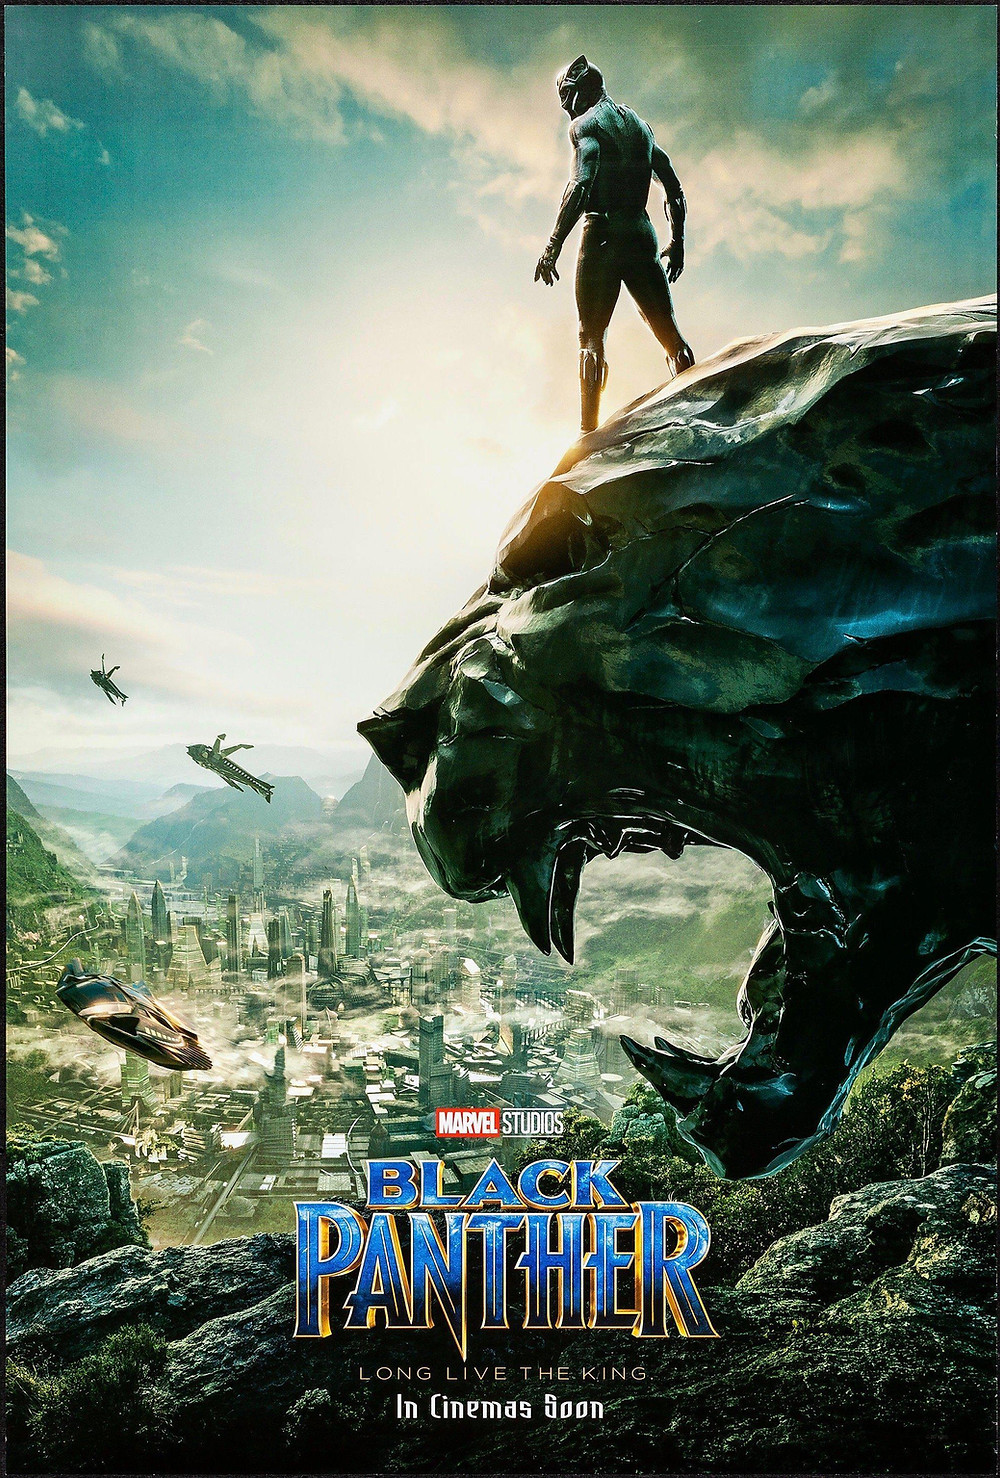 The Black Panther superhero stands on the head of a large panther statue looking out over the Kingdom of Wakanda. A technologically advanced city is in the valley below him.